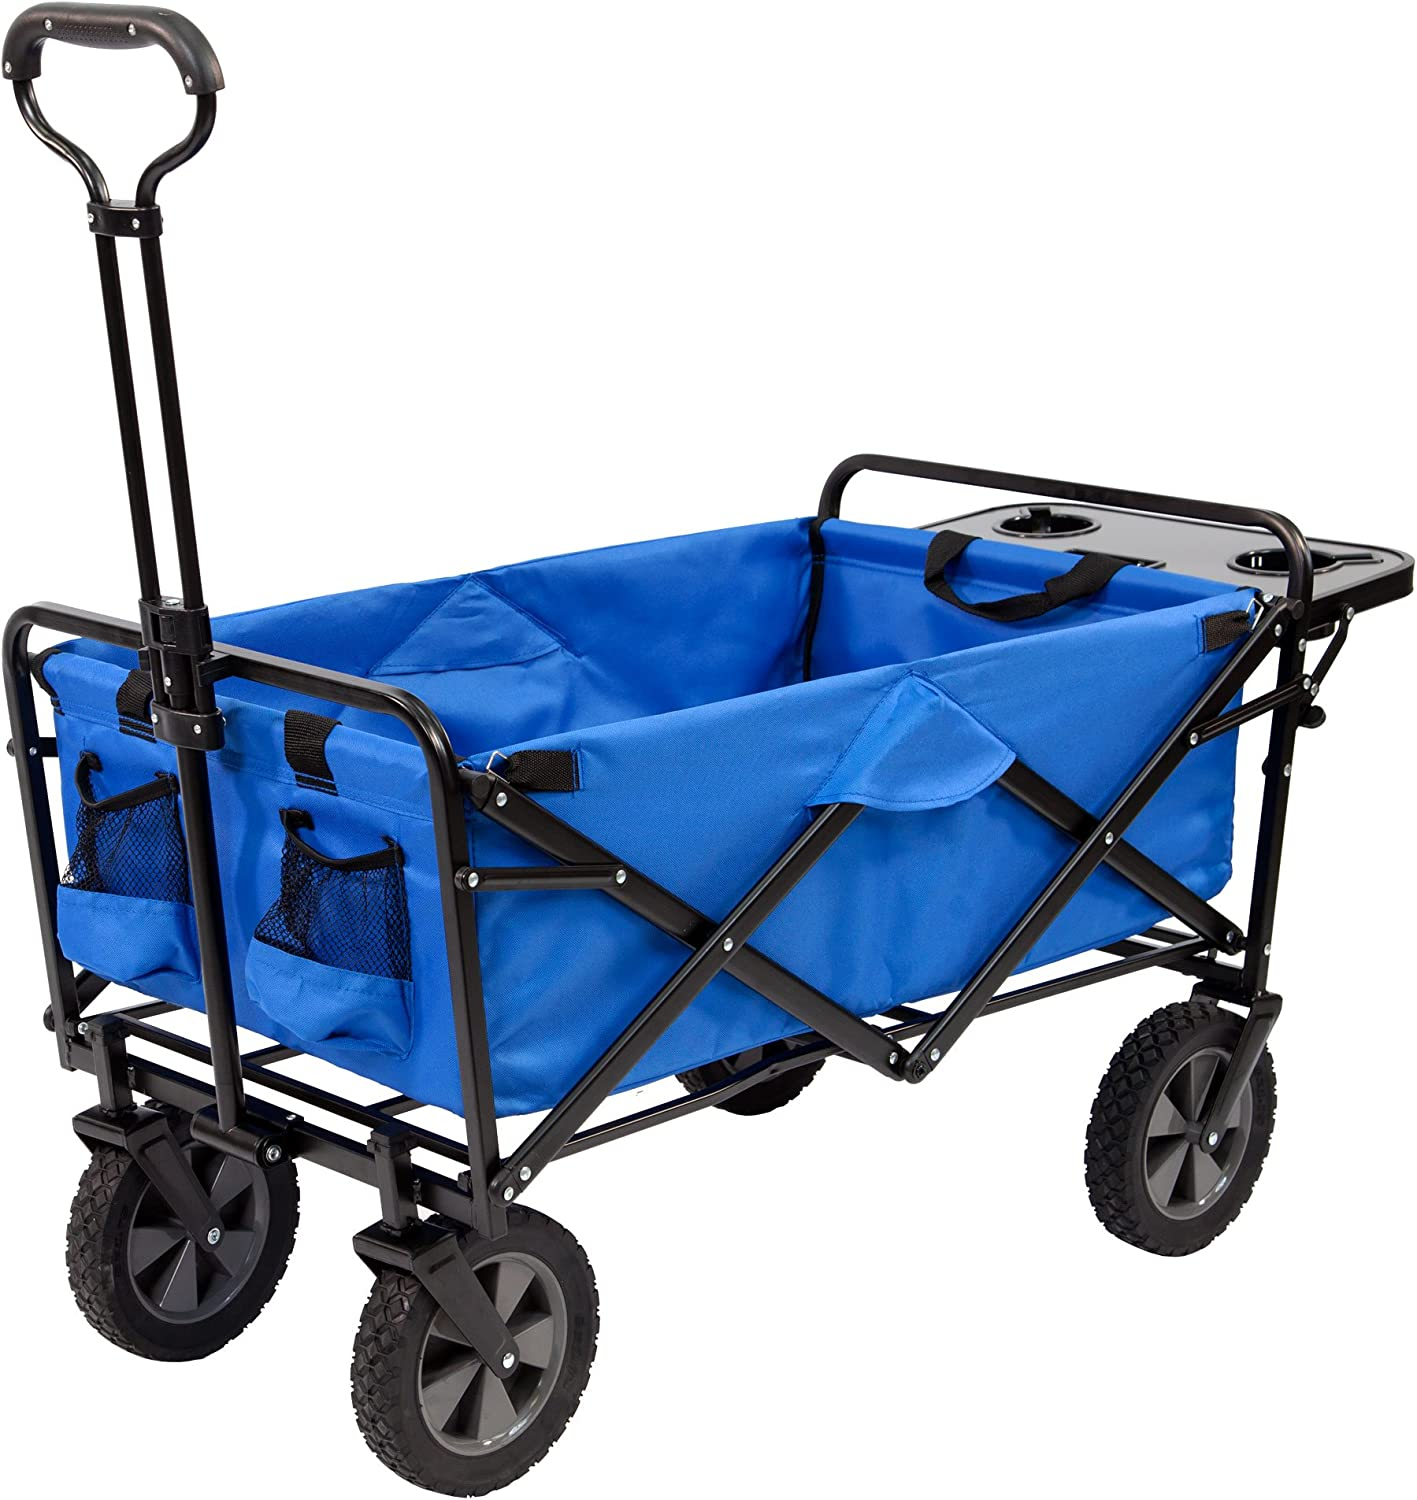 Mac Sports Collapsible Folding Outdoor Utility Wagon with Side Table – Blue